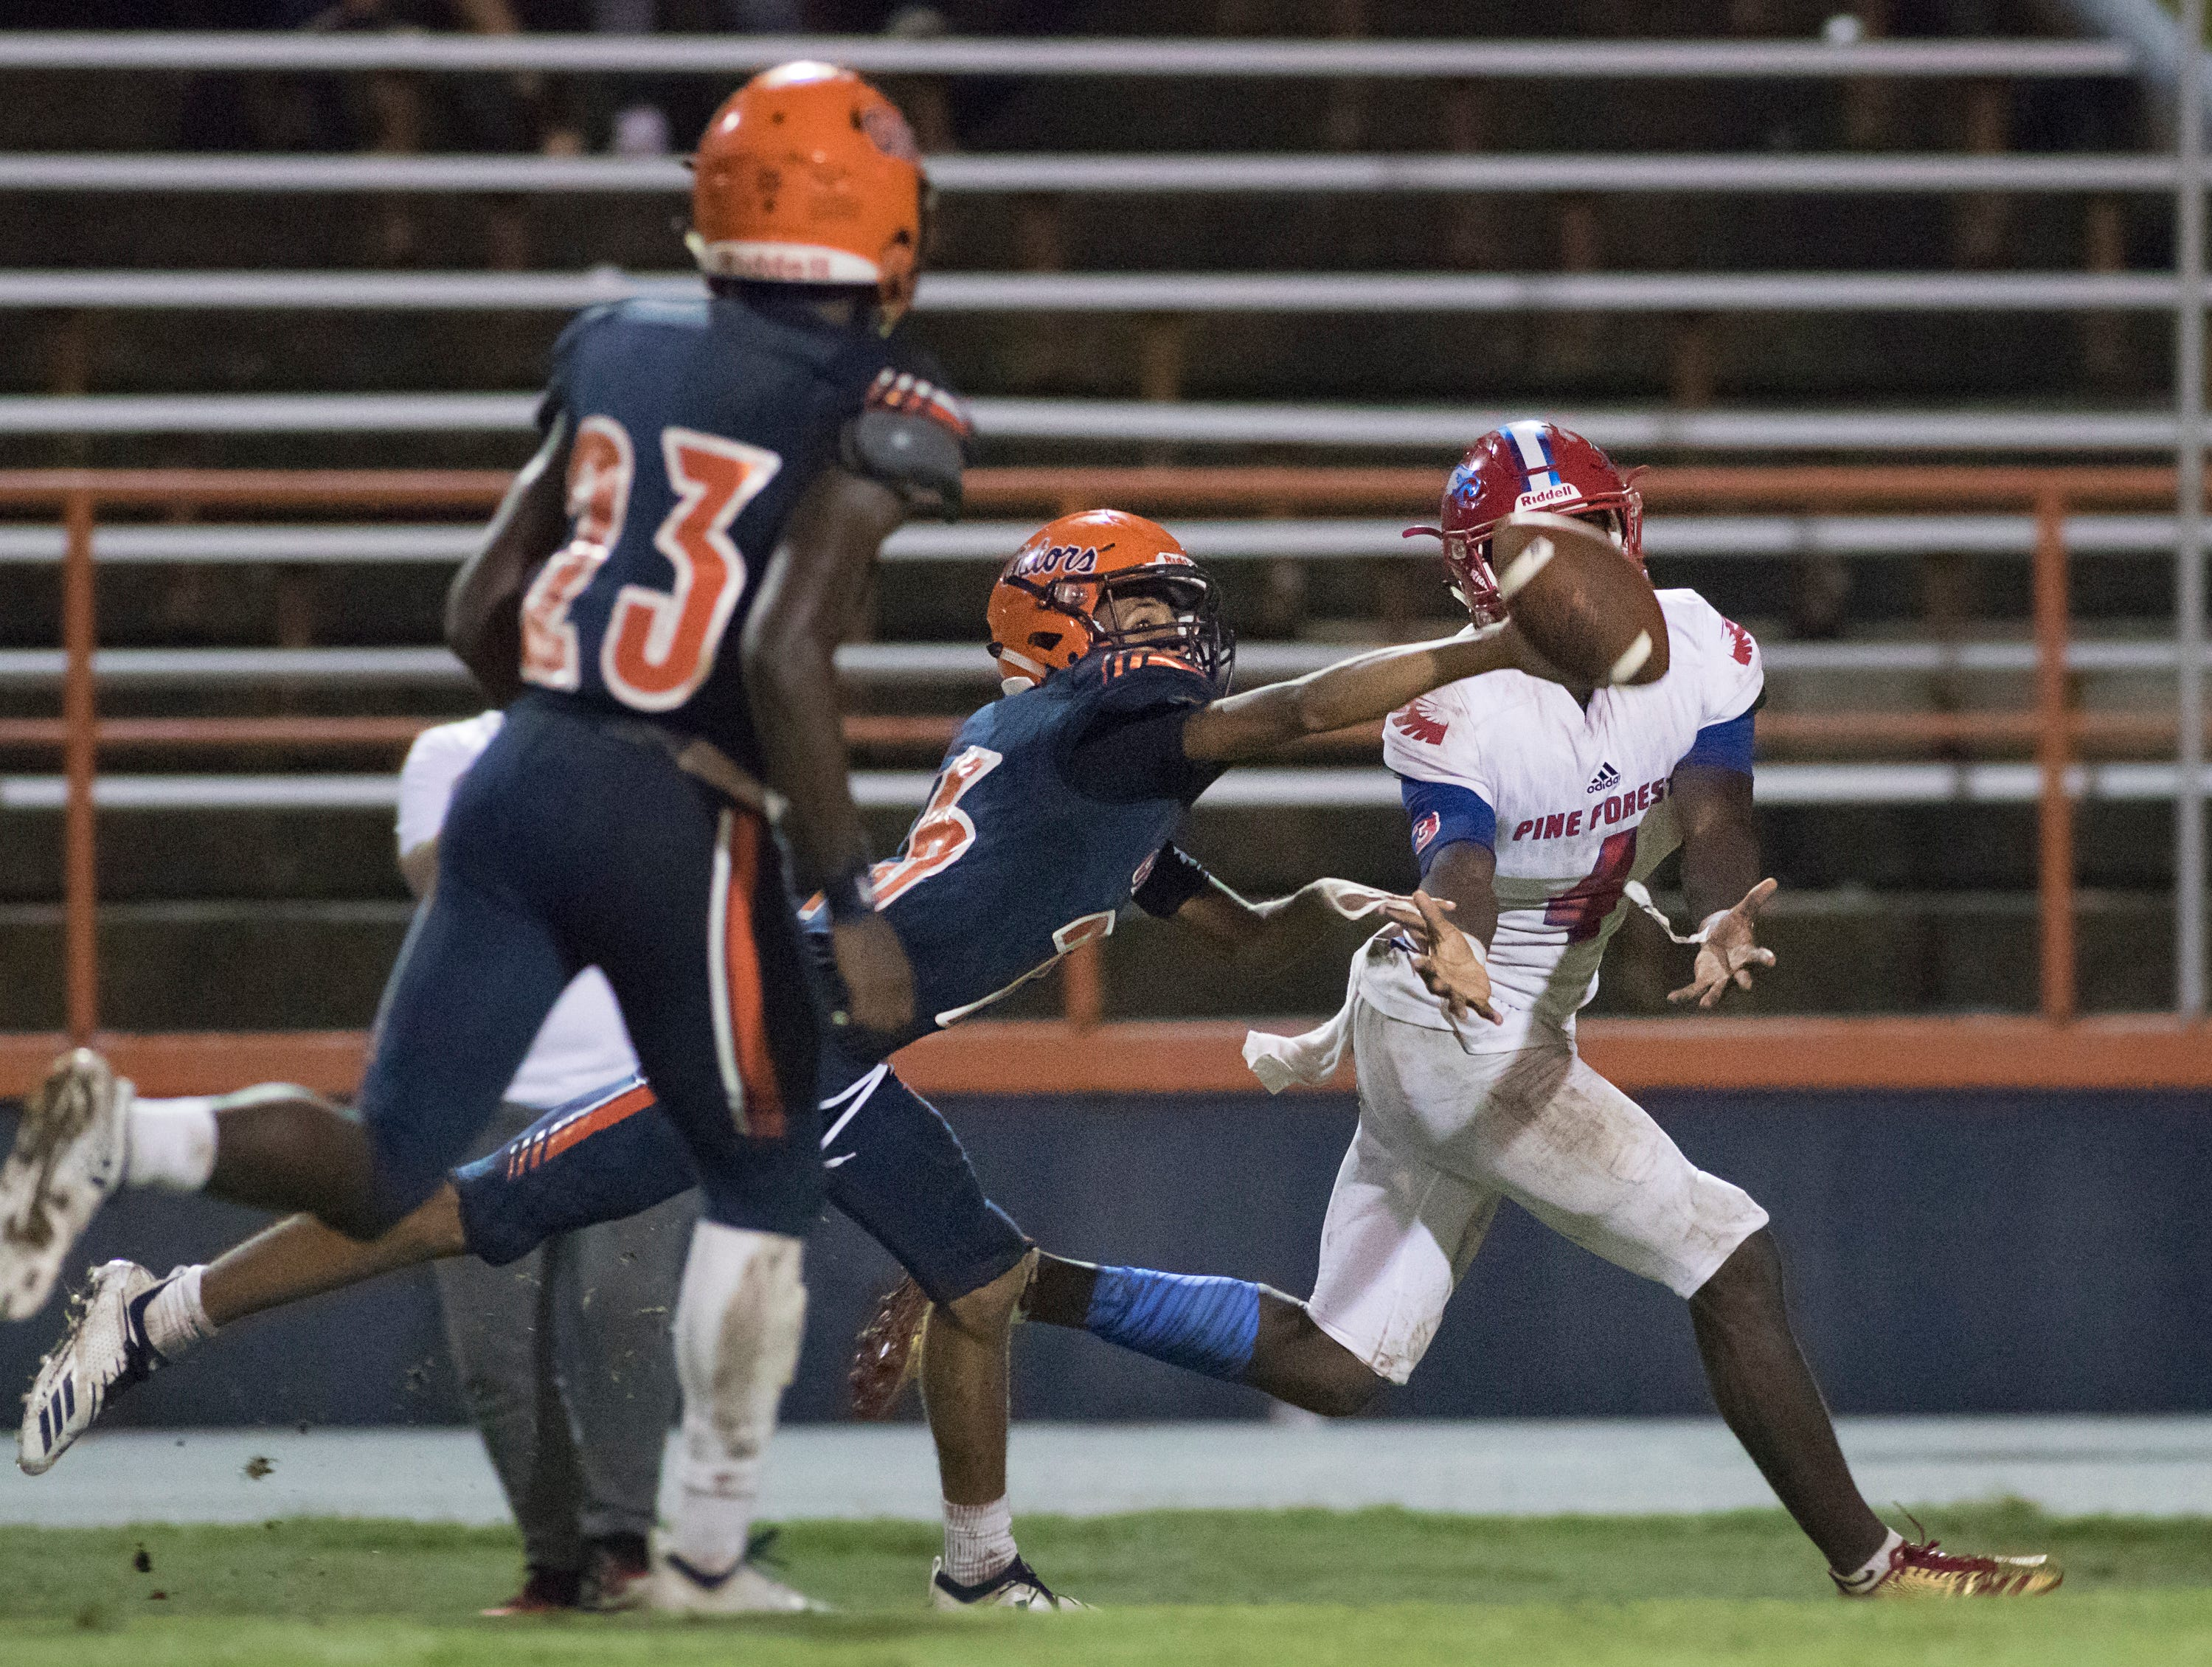 Charlie Brown III (26) breaks up a pass to Vontarious Hill (4) during the Pine Forest vs Escambia football game at Escambia High School in Pensacola on Friday, September 28, 2018.